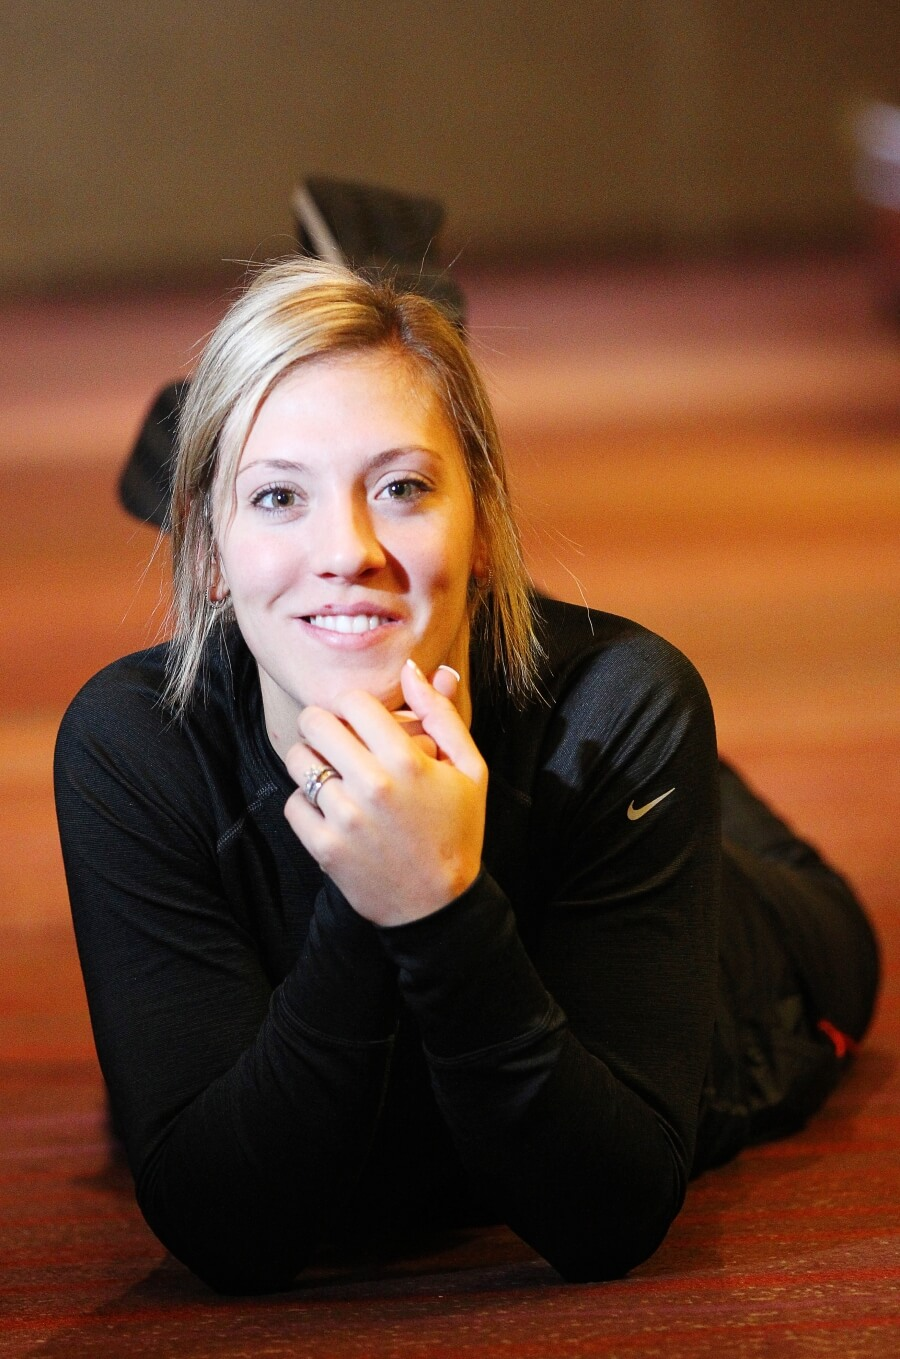 Meghan Agosta sexy pic